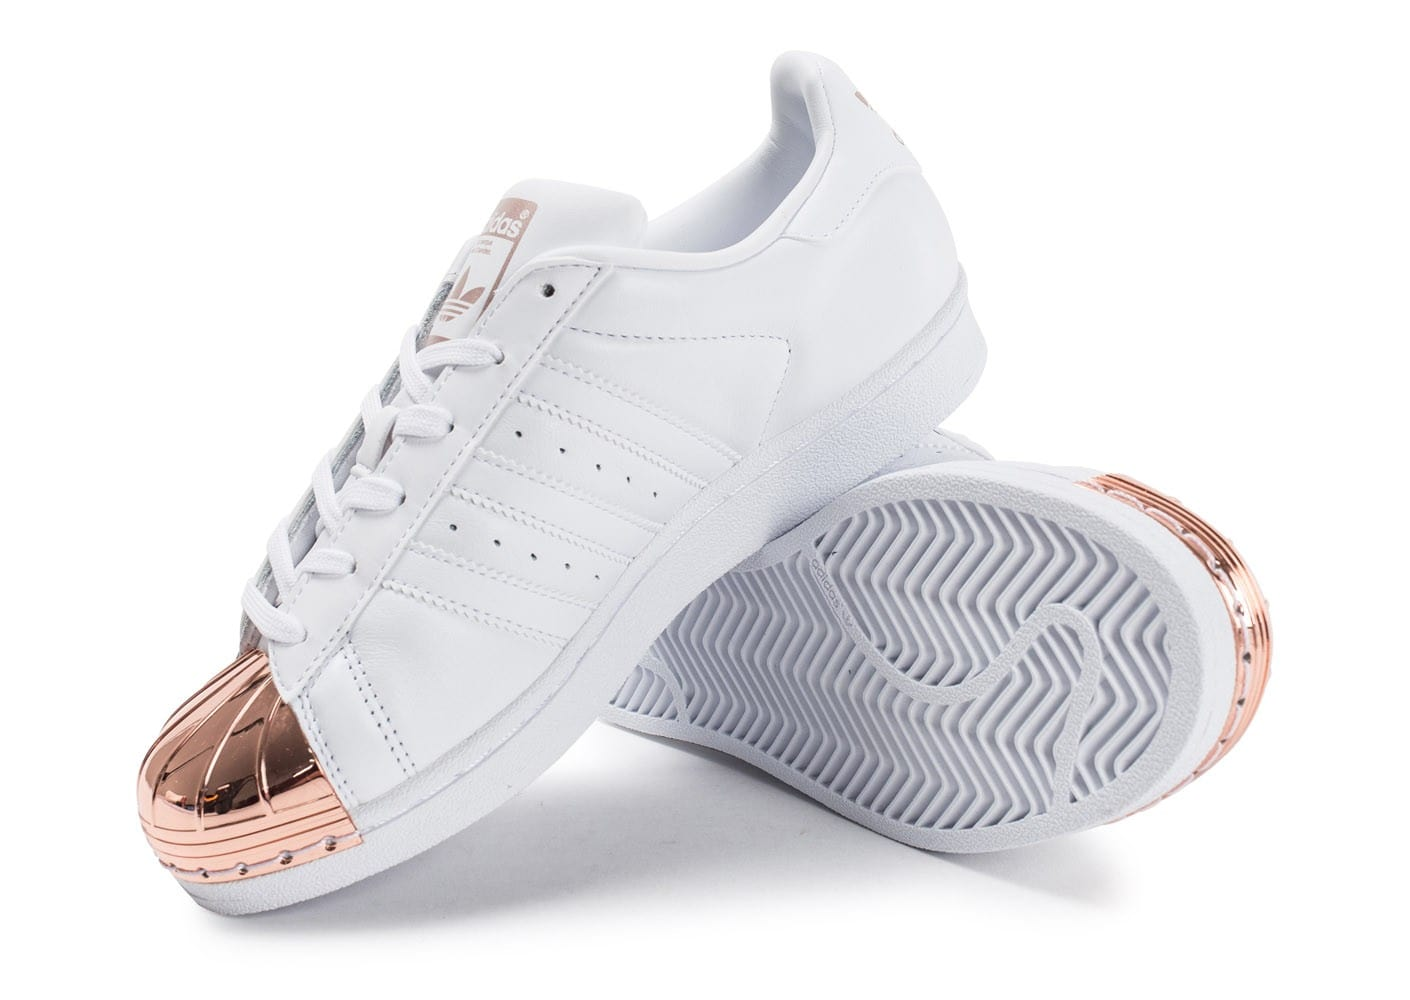 new product 6a383 259cb ... chaussures adidas superstar 80s metal toe blanche vue dessus dessous